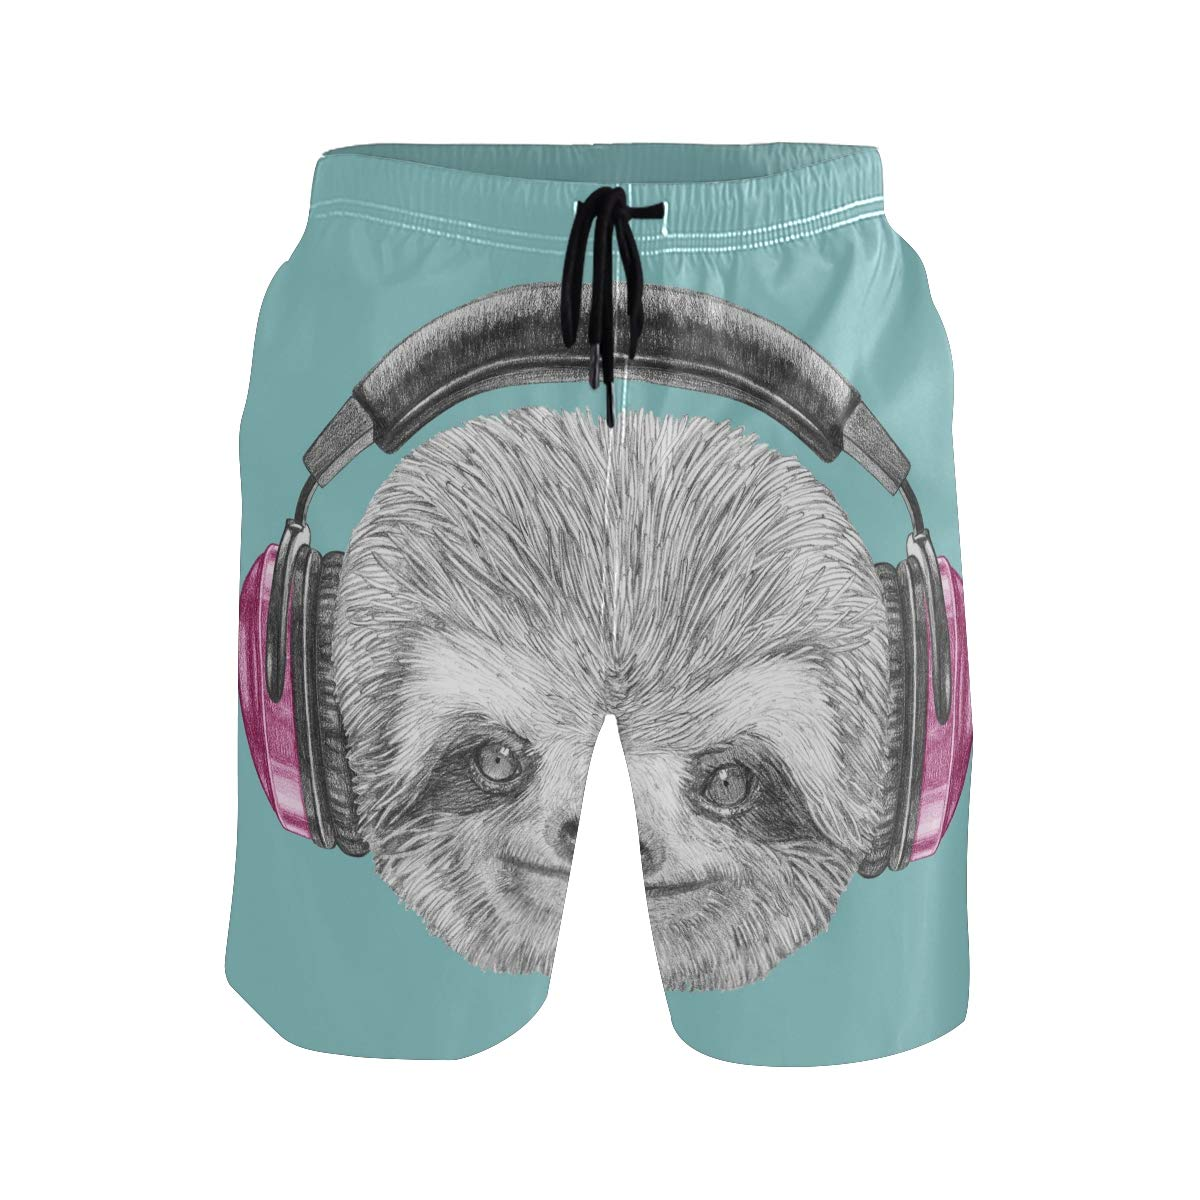 JERECY Mens Swim Trunks Cute Sloth with Headphone Quick Dry Board Shorts with Drawstring and Pockets